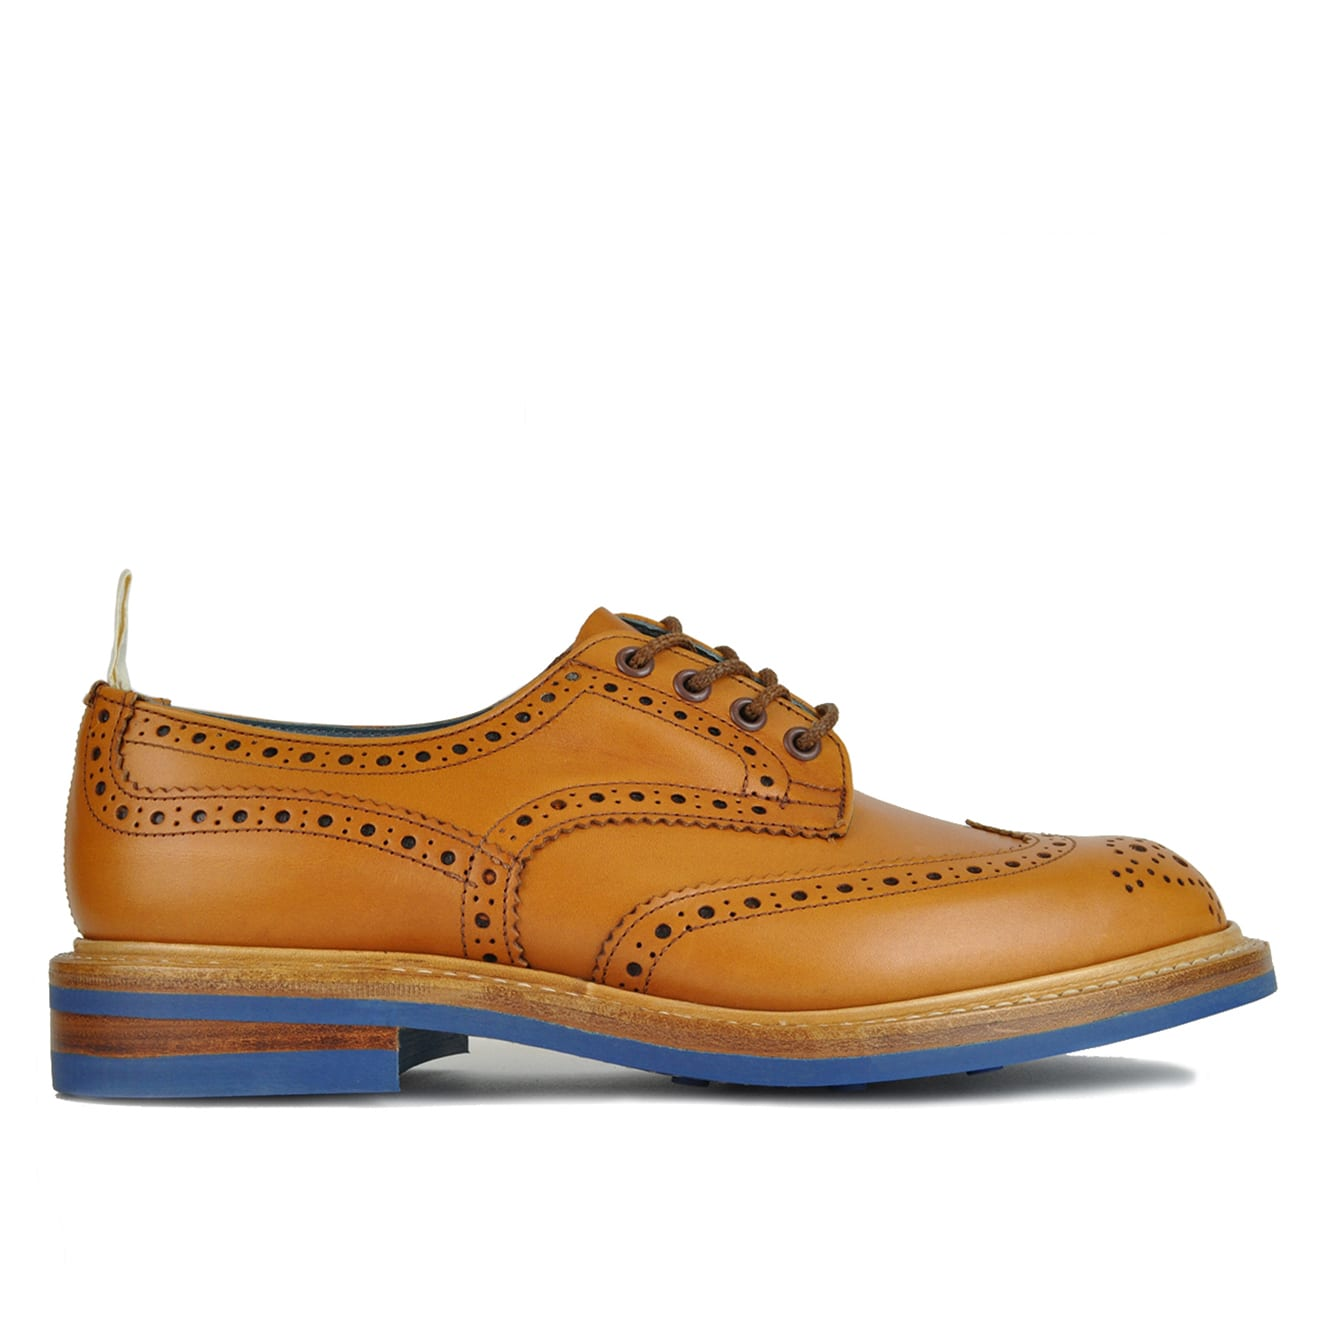 Trickers Bourton Revival Derby Sole Brogue Tan